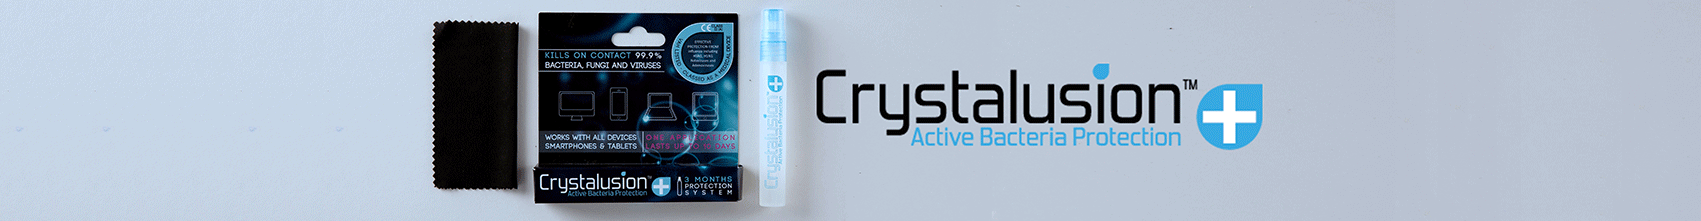 Crystalusion Plus - Active Bacteria Protection